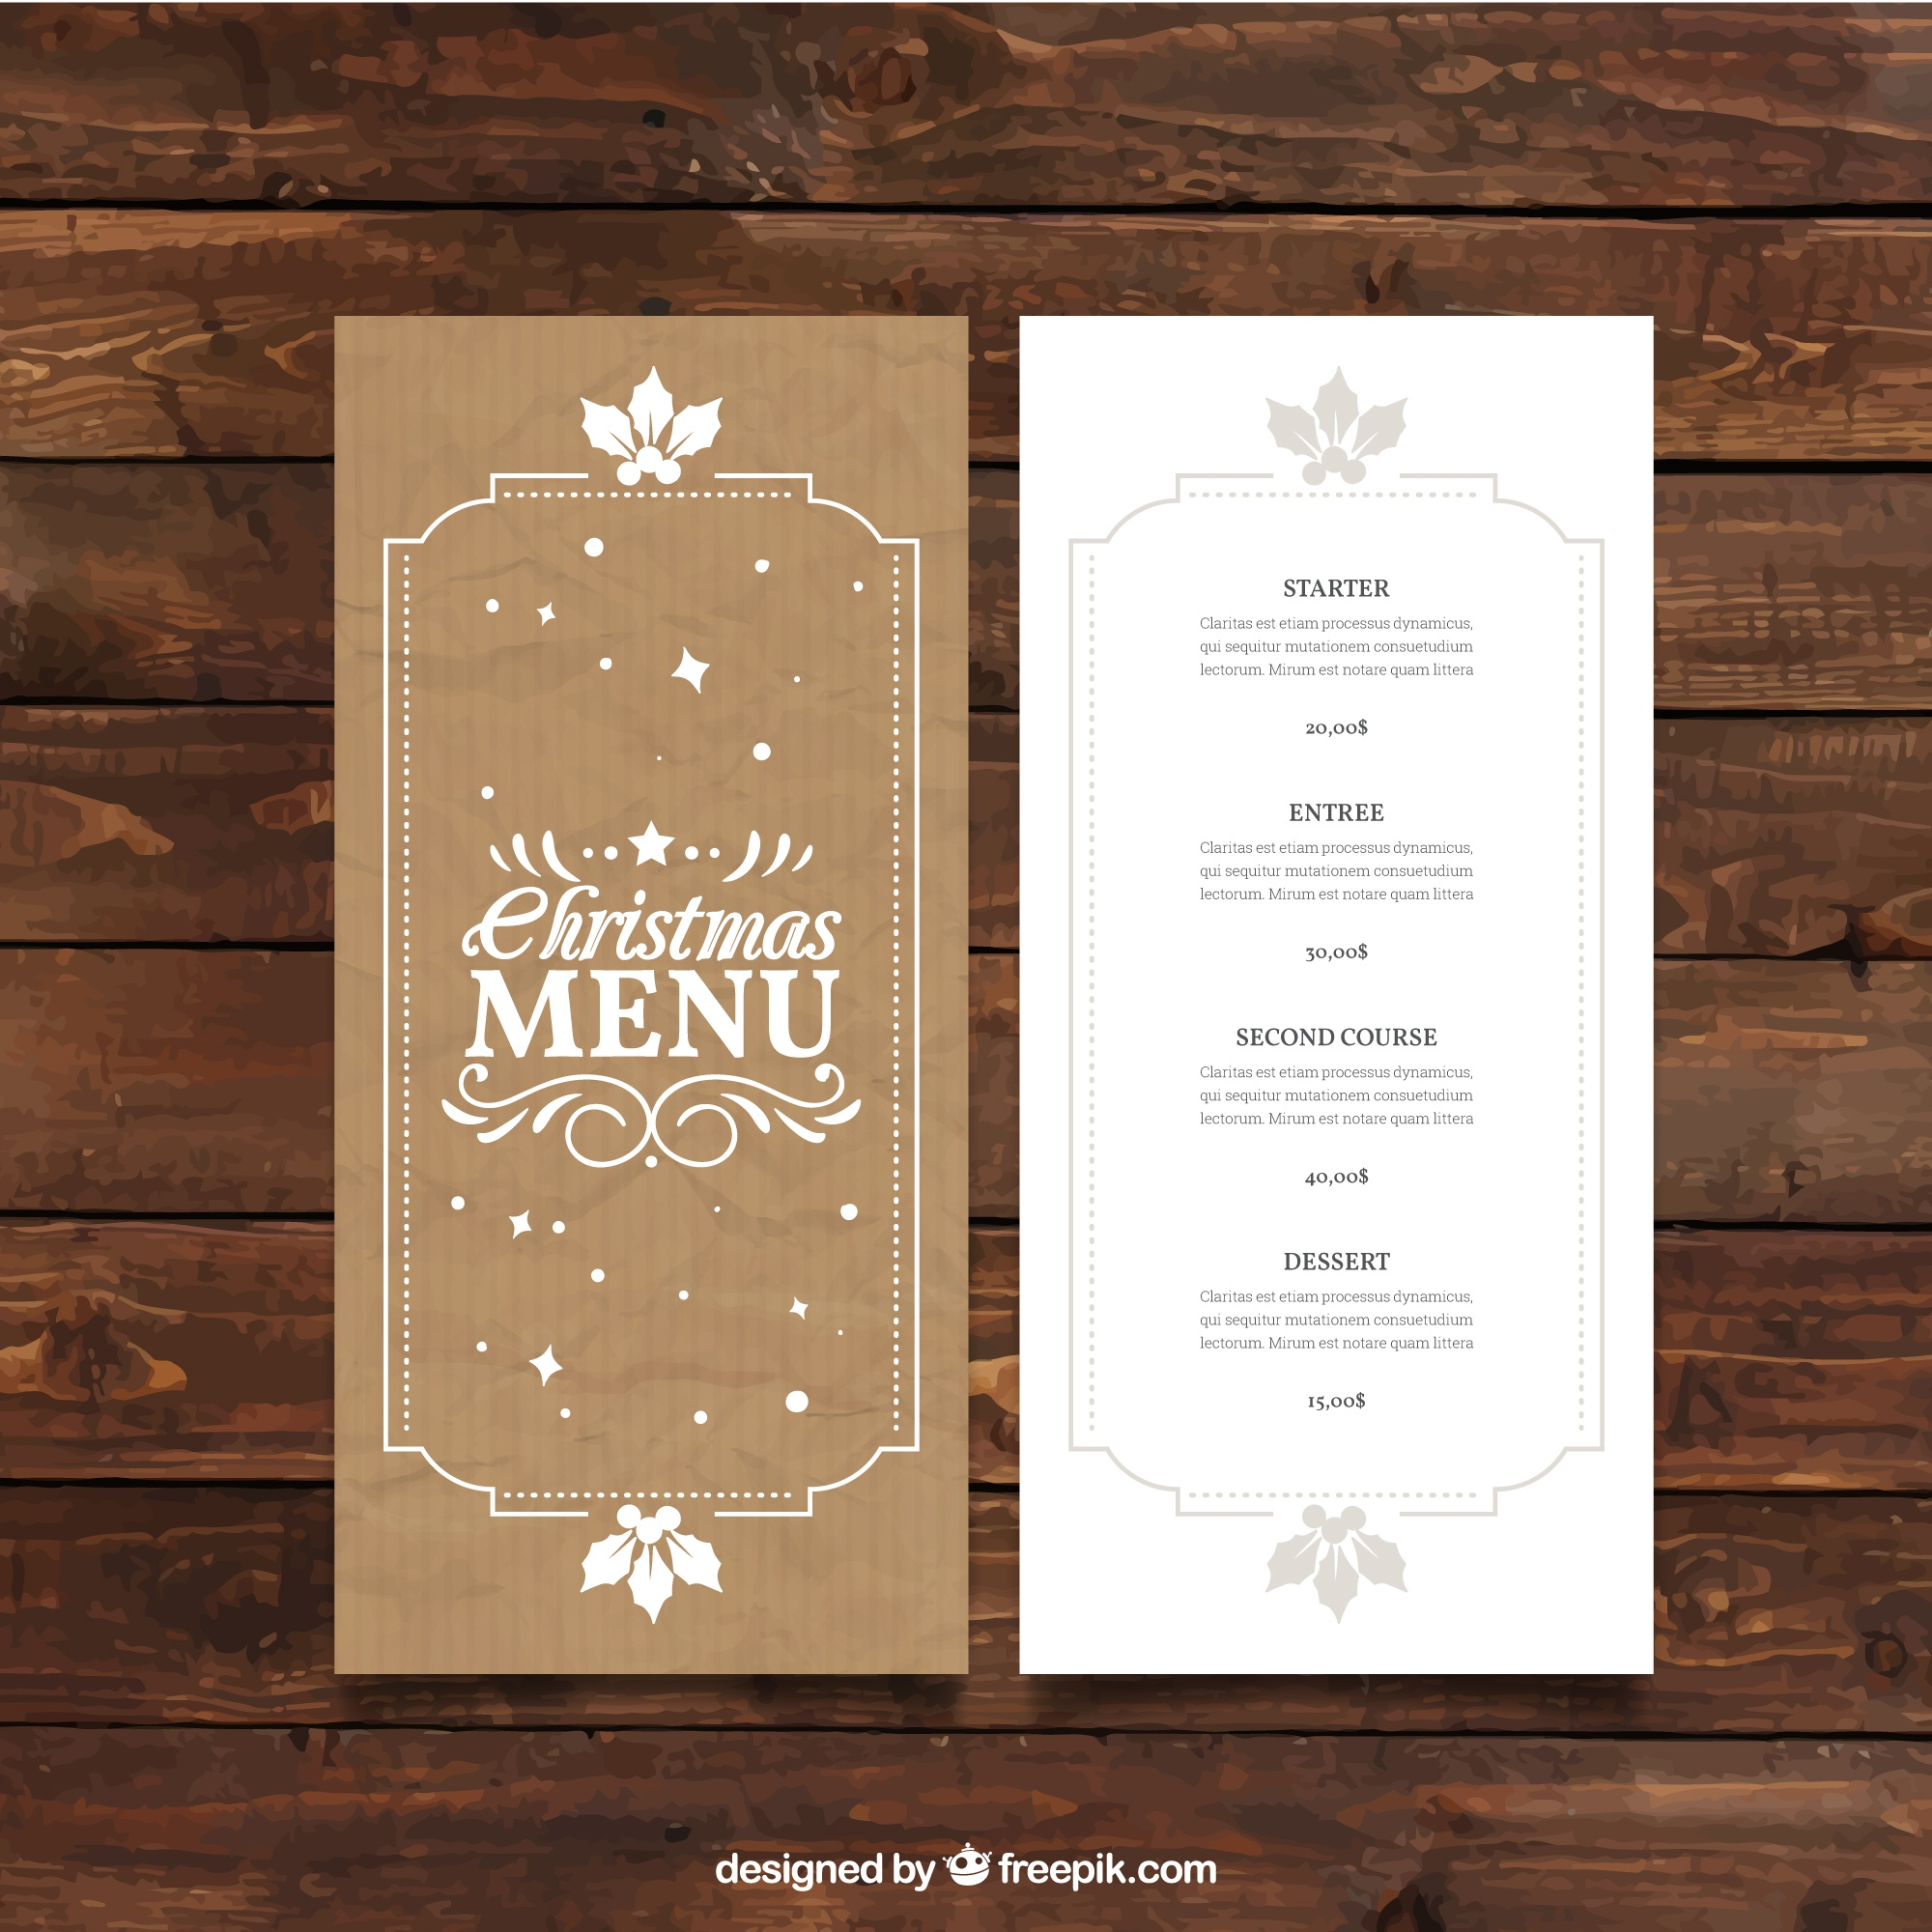 Molde do menu do Natal no estilo retro cartão